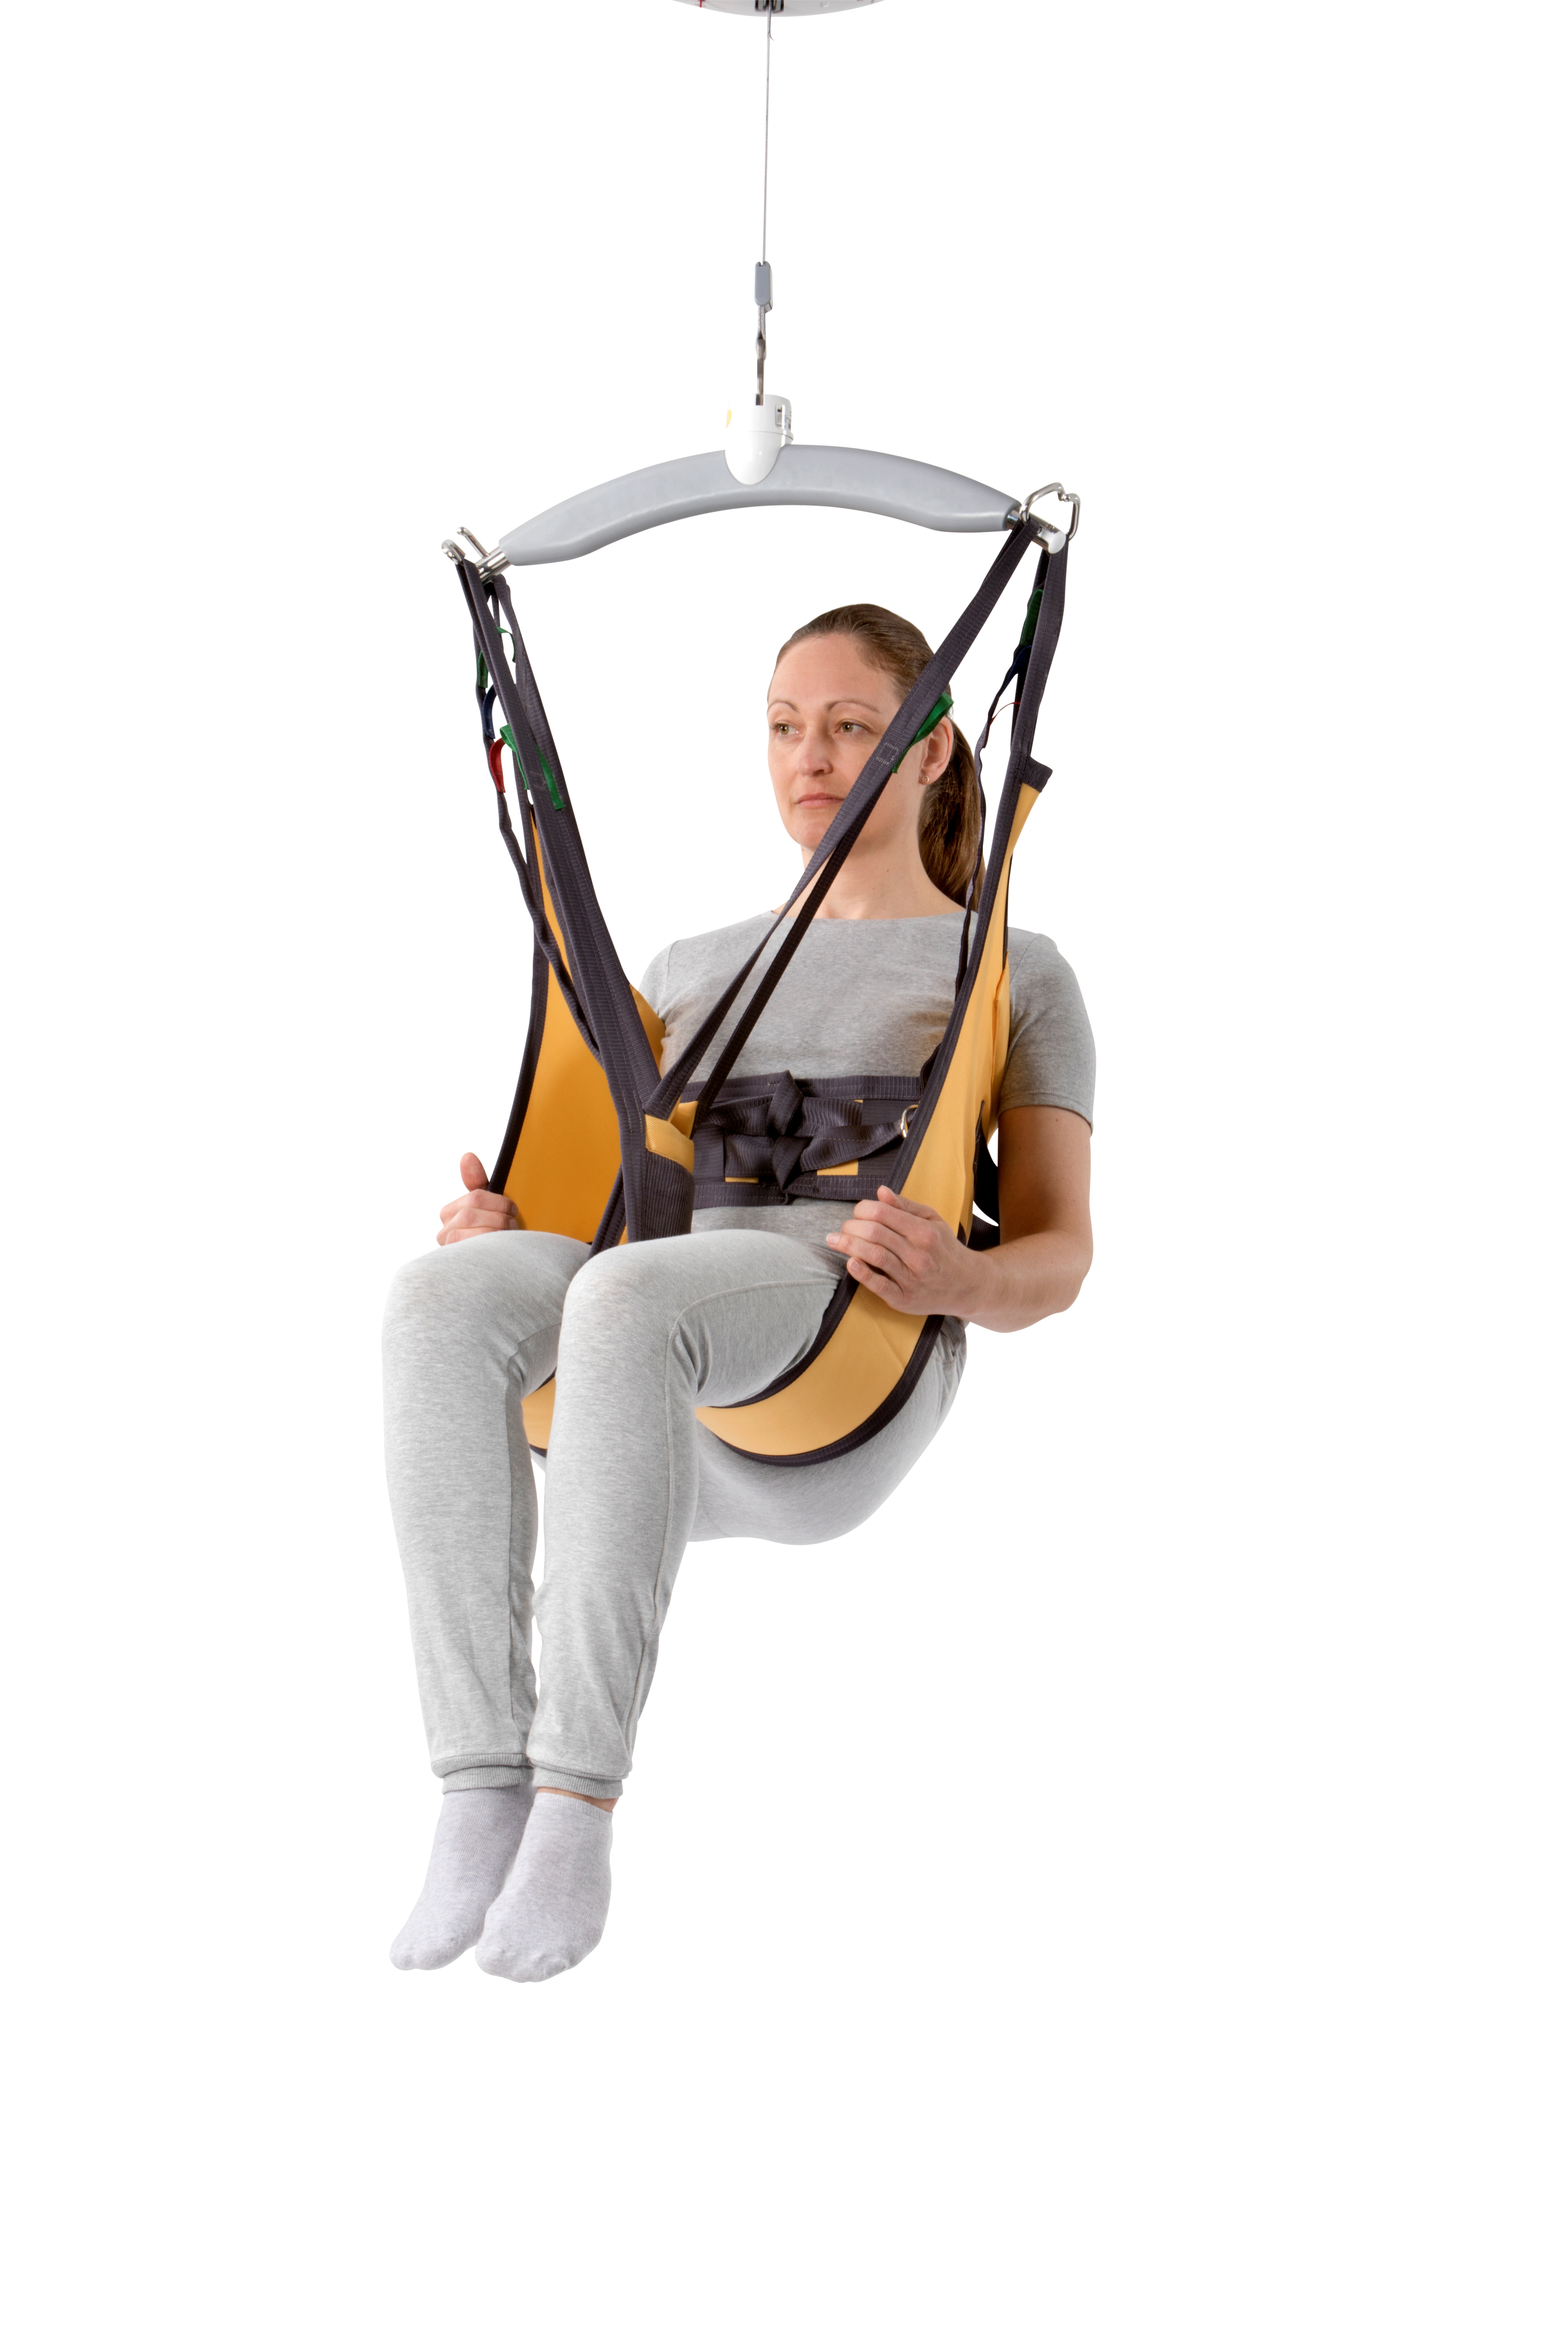 Toilet Sling For Moves In A Sitting Position With The